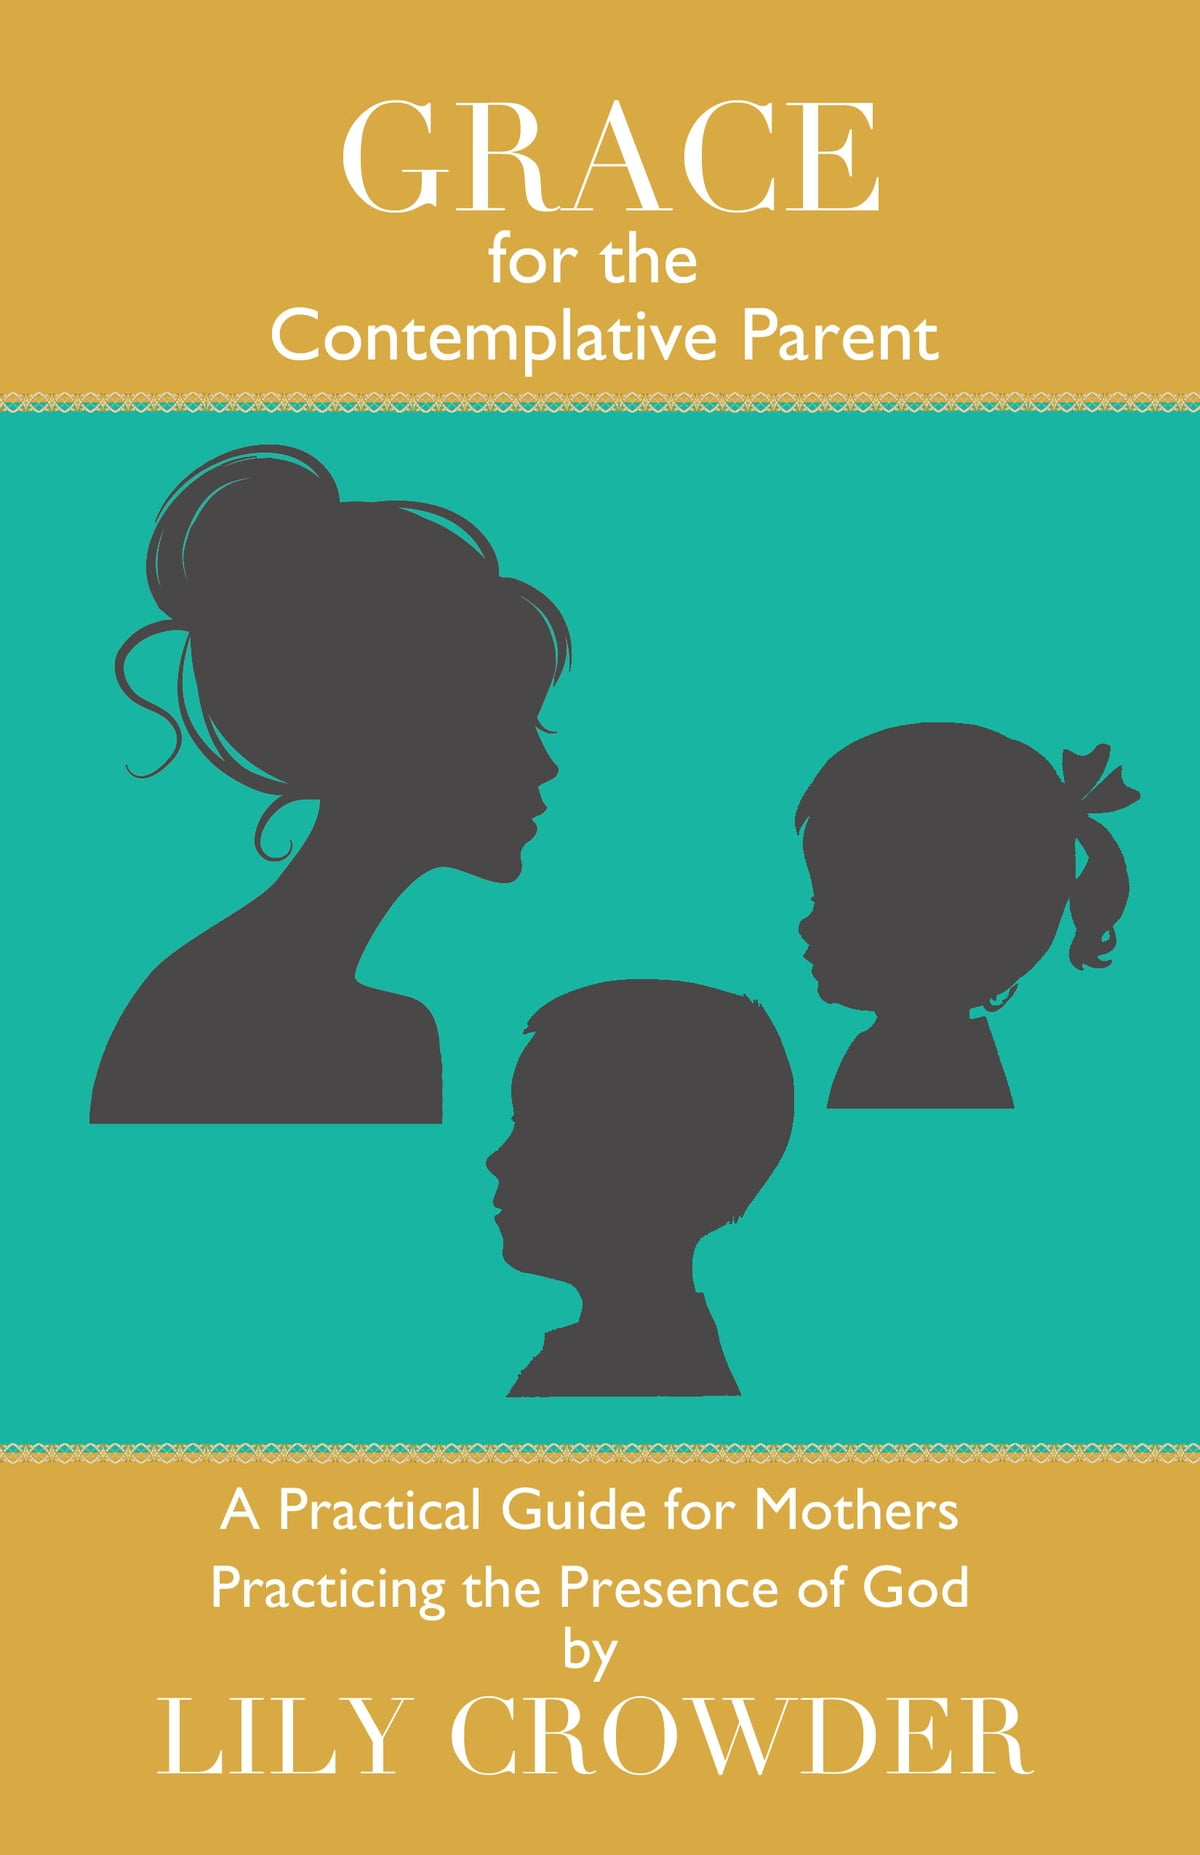 Grace for the Contemplative Parent eBook by Lily Crowder ...